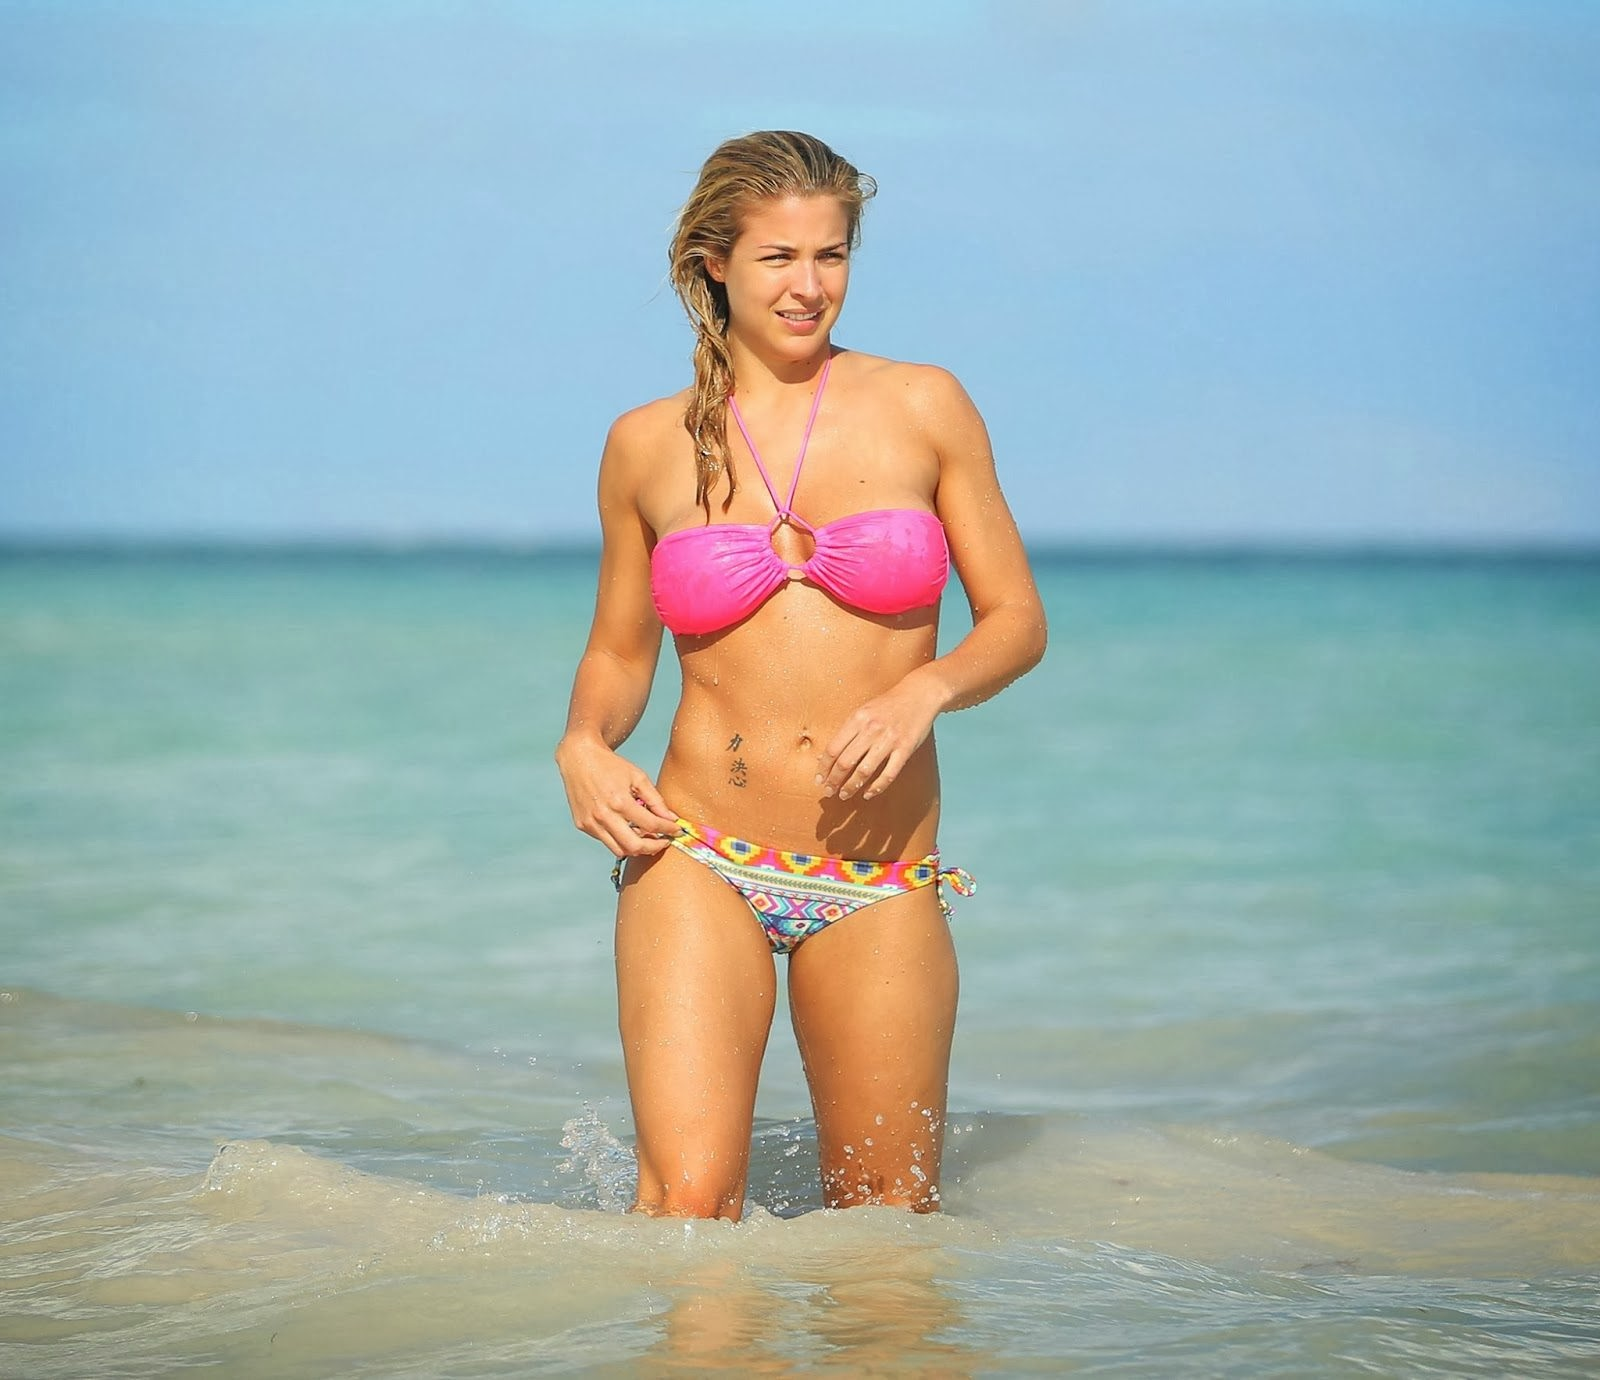 Gemma Atkinson Does Relax in a Pink Bikini on a beach in Dominican Republic